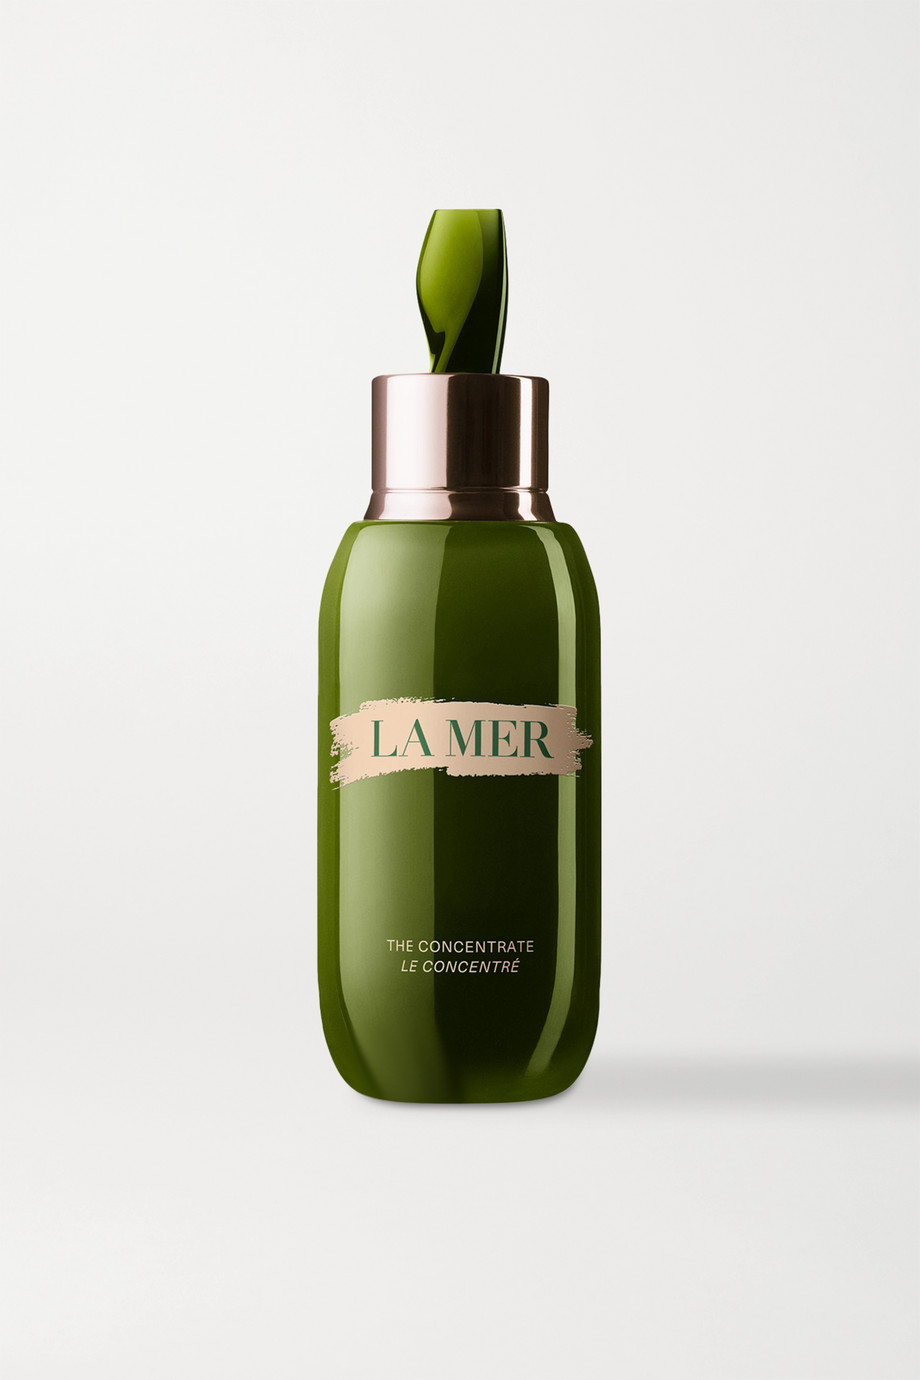 LA MER The Concentrate, 100ml